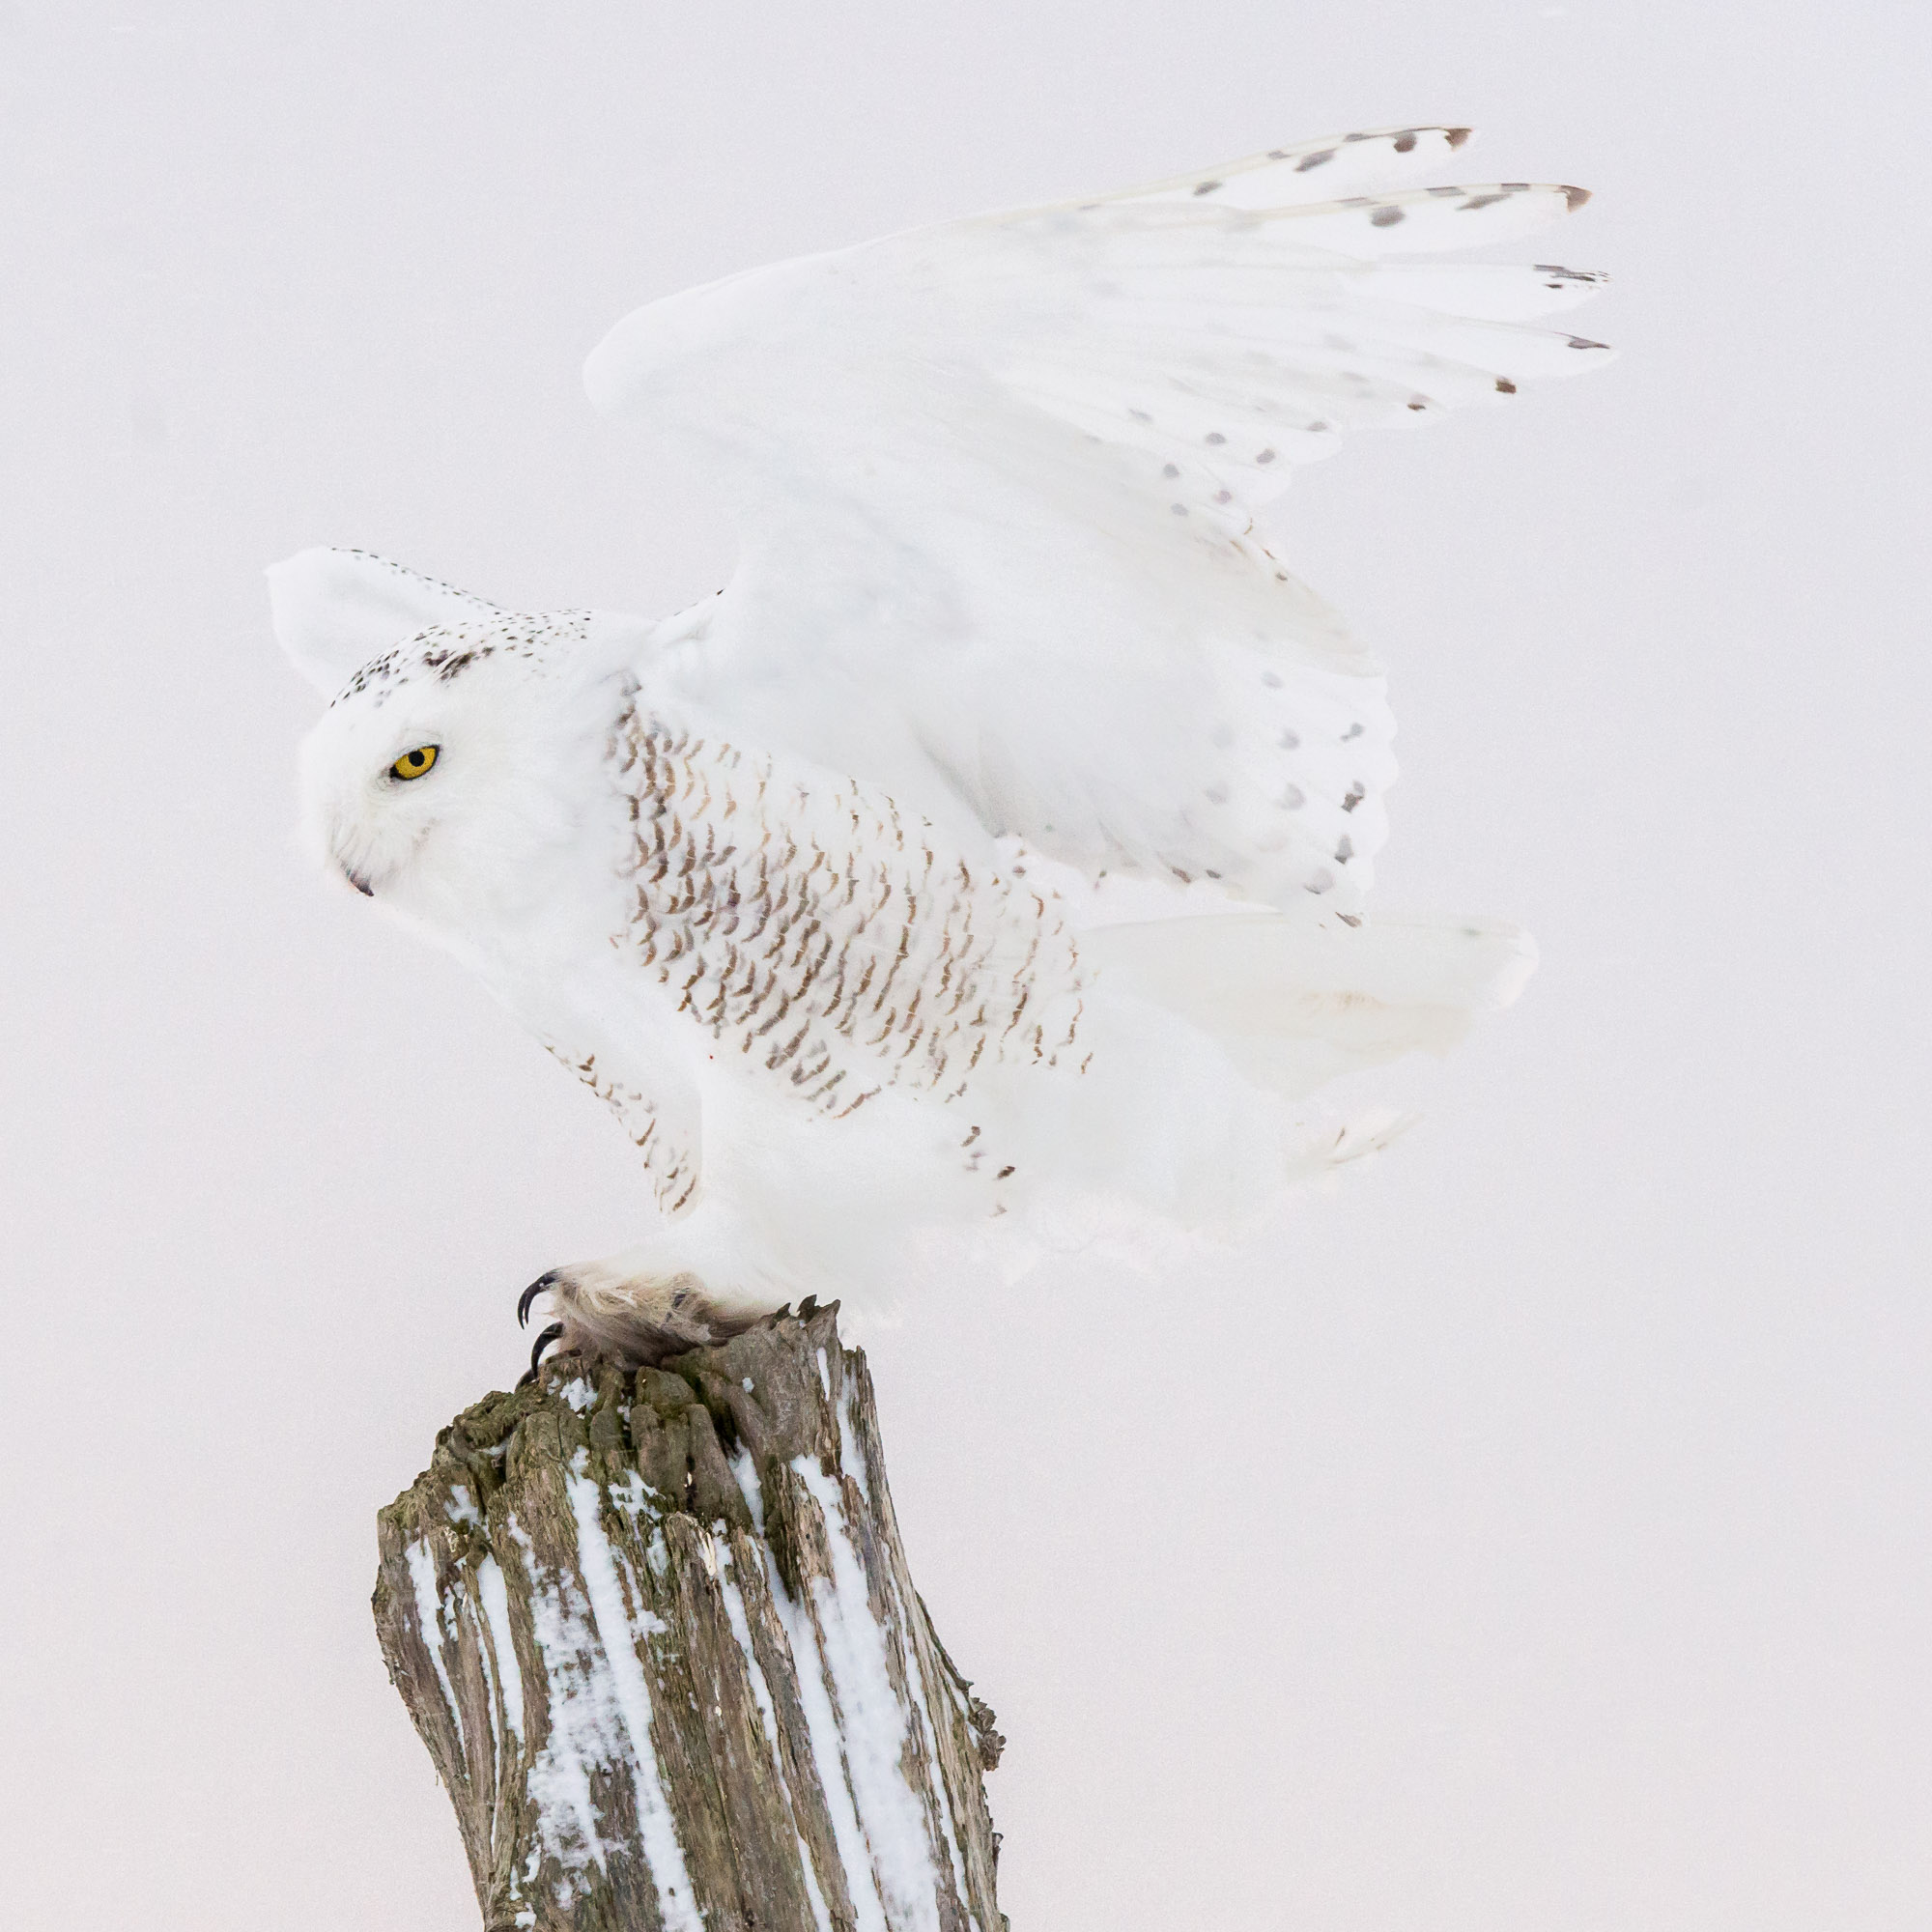 Snowy Owl landing on fence post - Stayner, Ontario, Canada